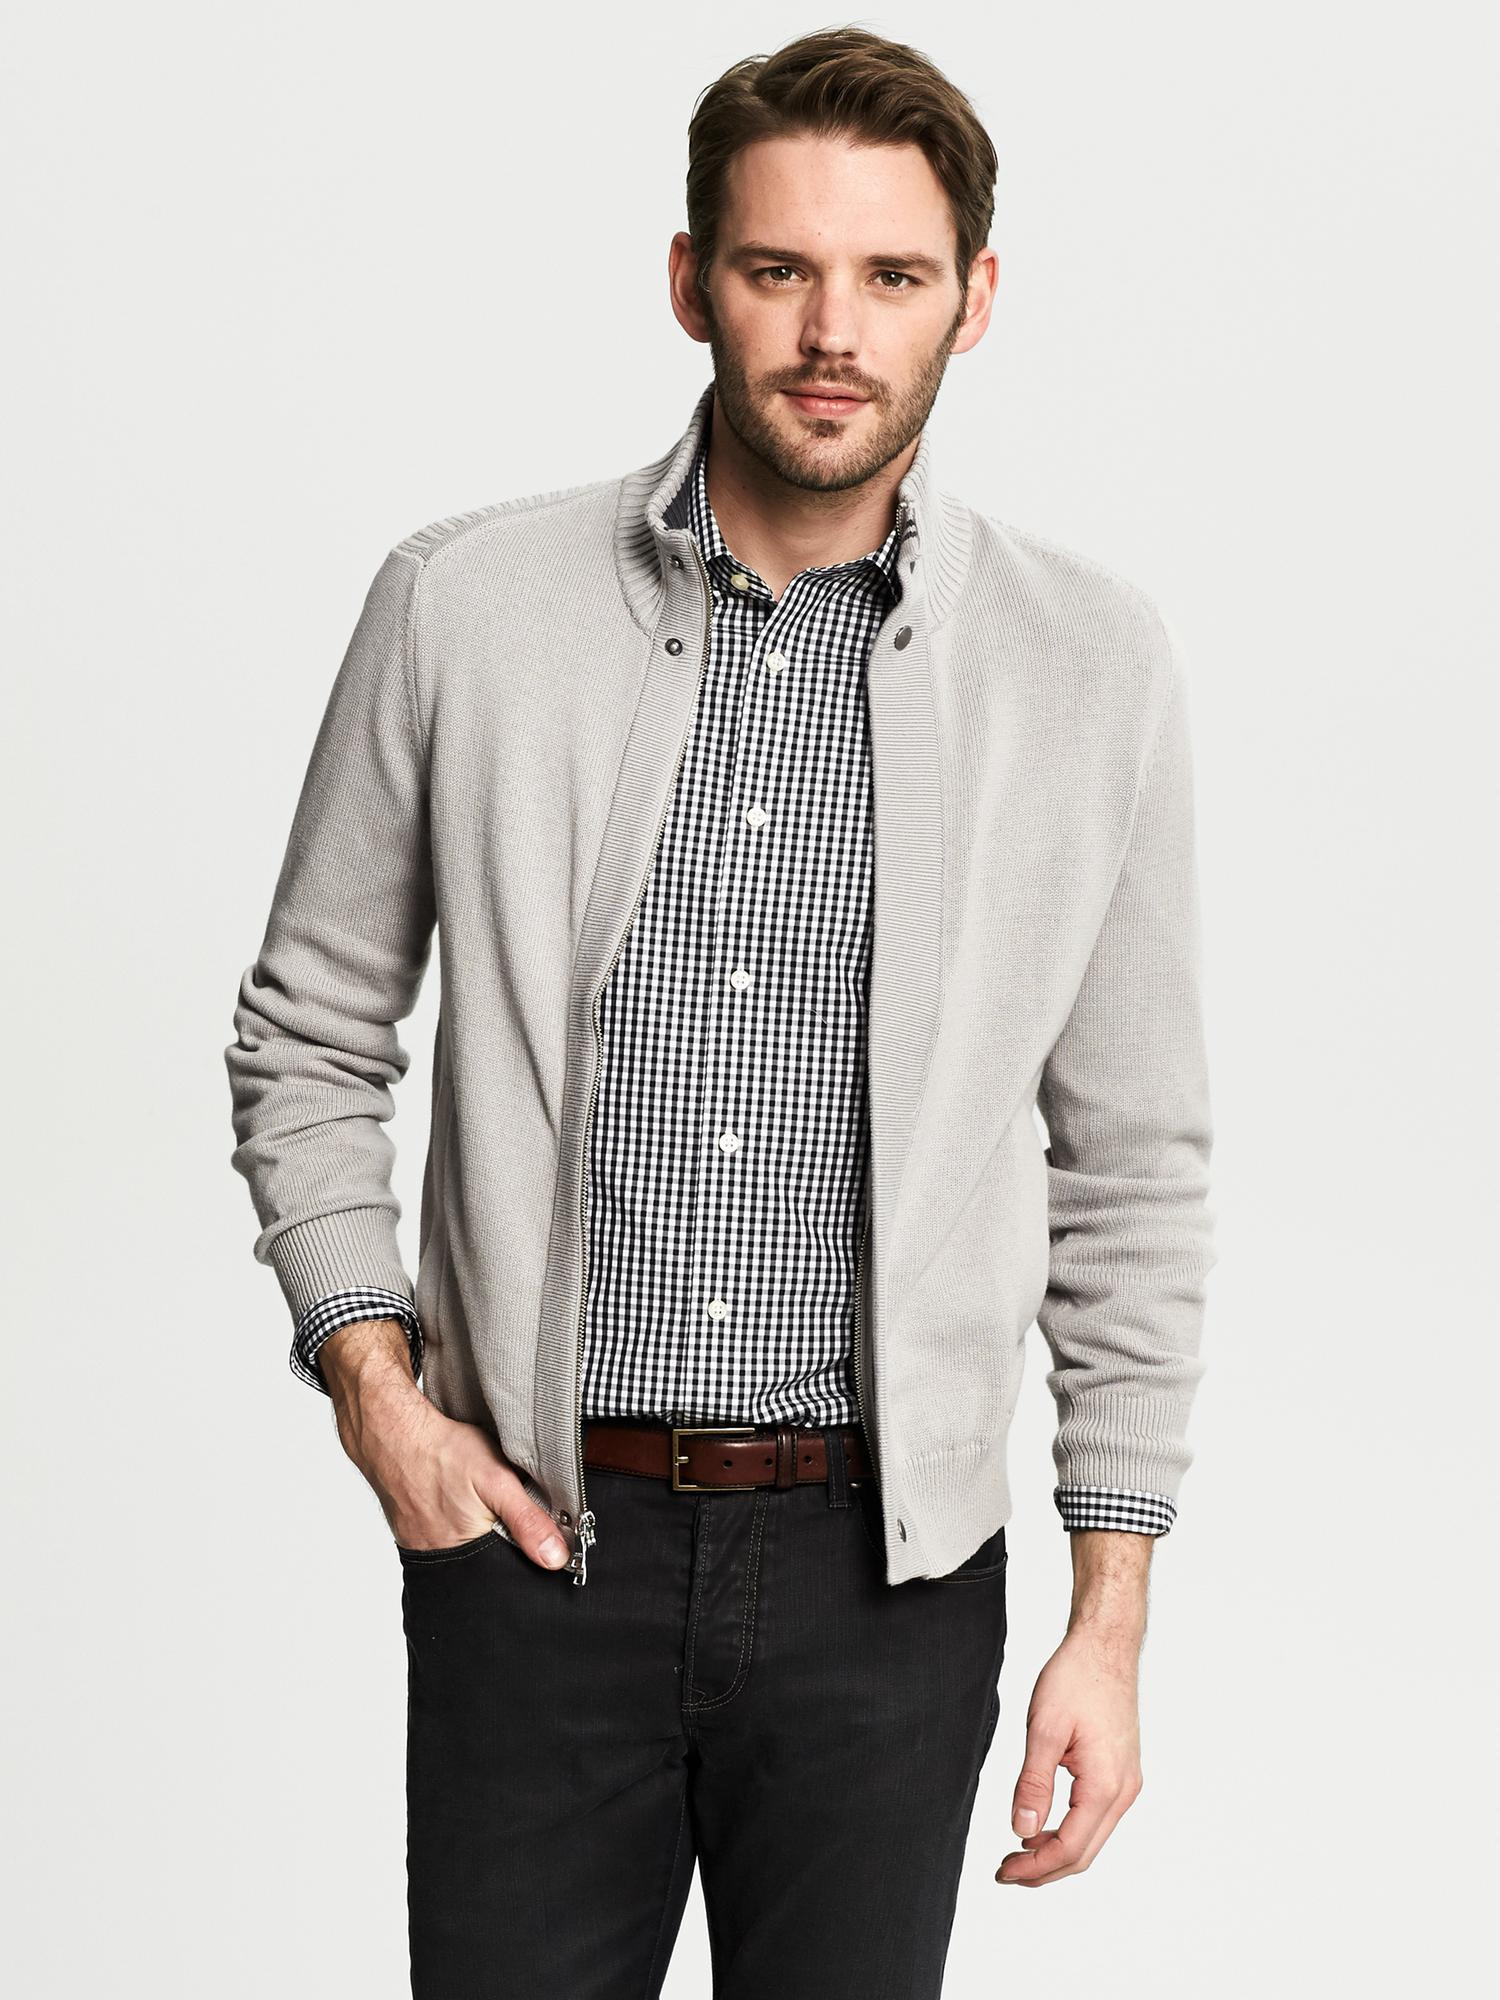 Banana Republic Mens Cotton V Neck Sweater. by Banana Republic. $ $ 49 99 Prime. FREE Shipping on eligible orders. Some sizes/colors are Prime eligible. Banana Republic Mens Cashmere V Neck Sweaters. by Banana Republic. $ $ 00 Prime. FREE Shipping on eligible orders.